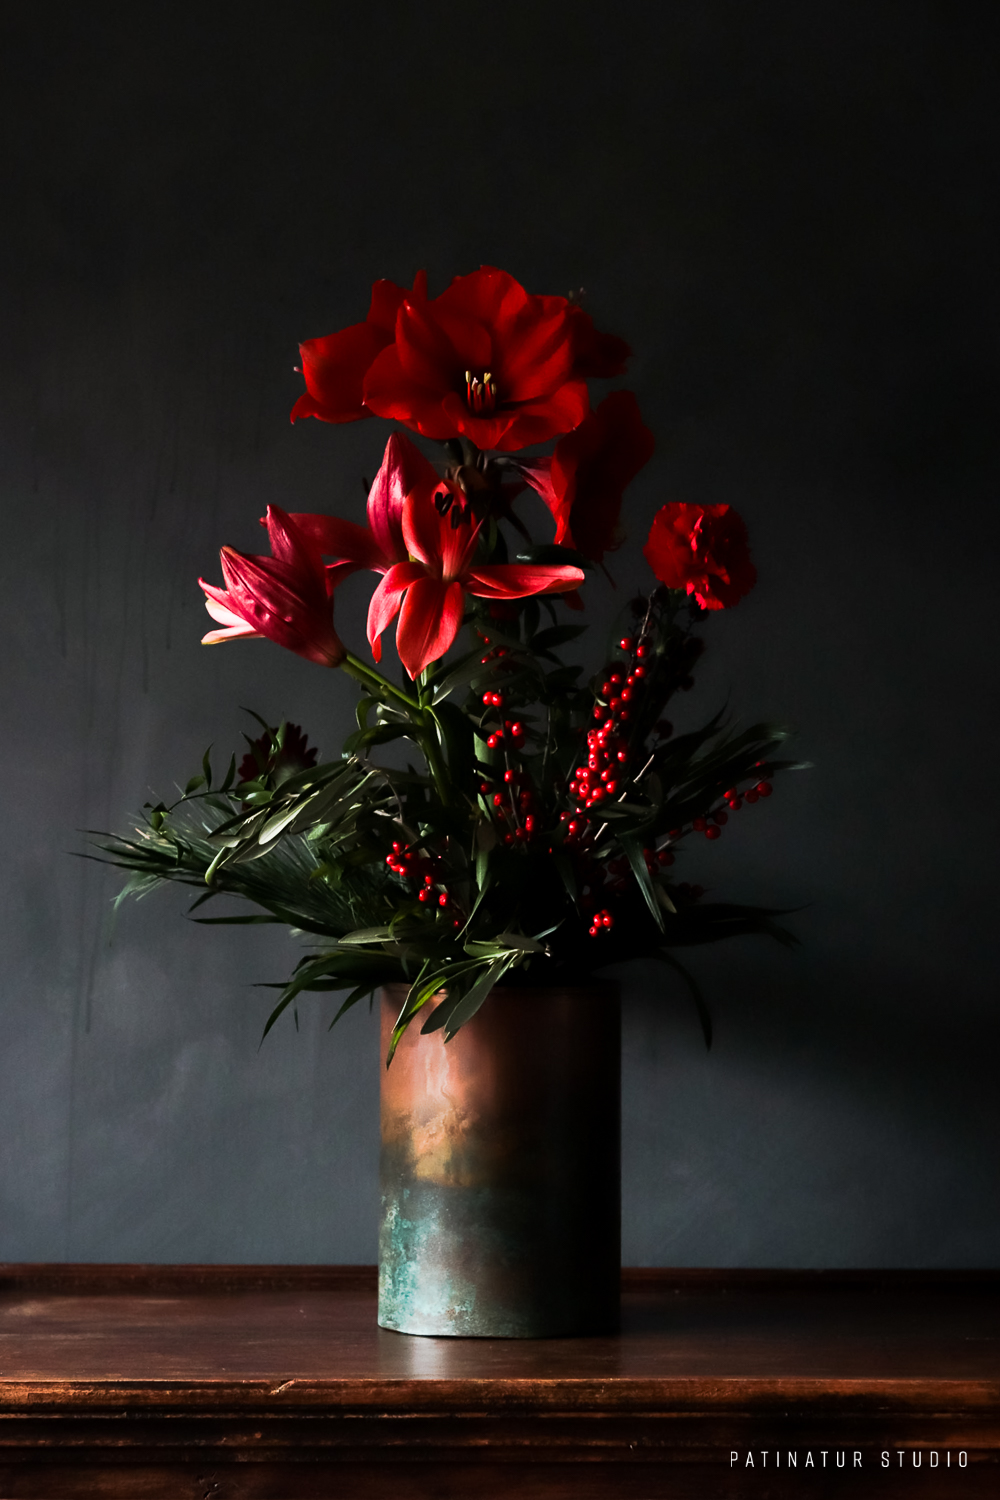 Photo art | Dark and moody still life with red Christmas bouquet in rustic copper vase